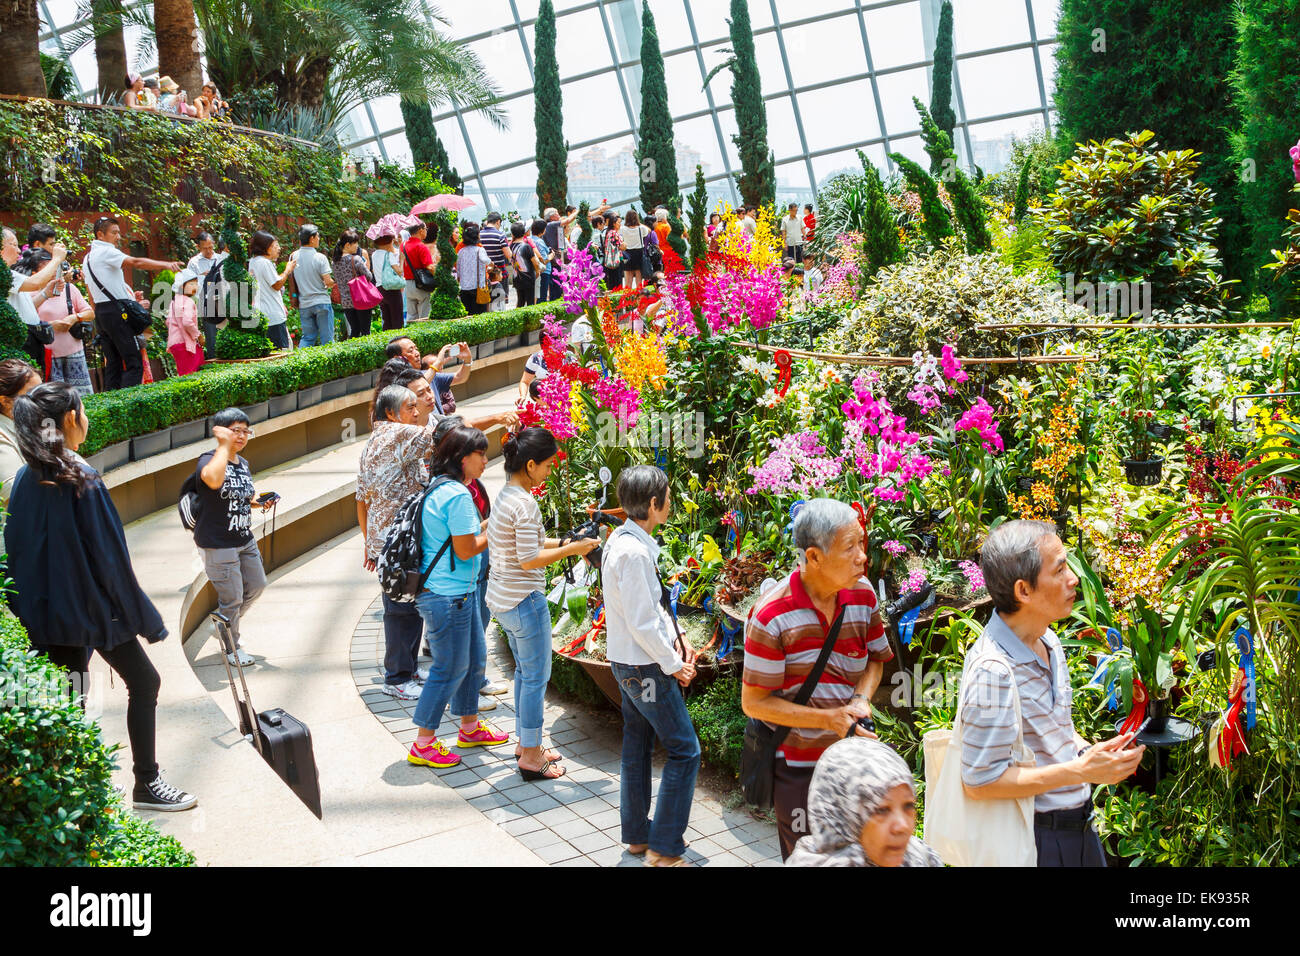 Flower Dome Conservatory. Gardens By The Bay. Singapore, Asia.